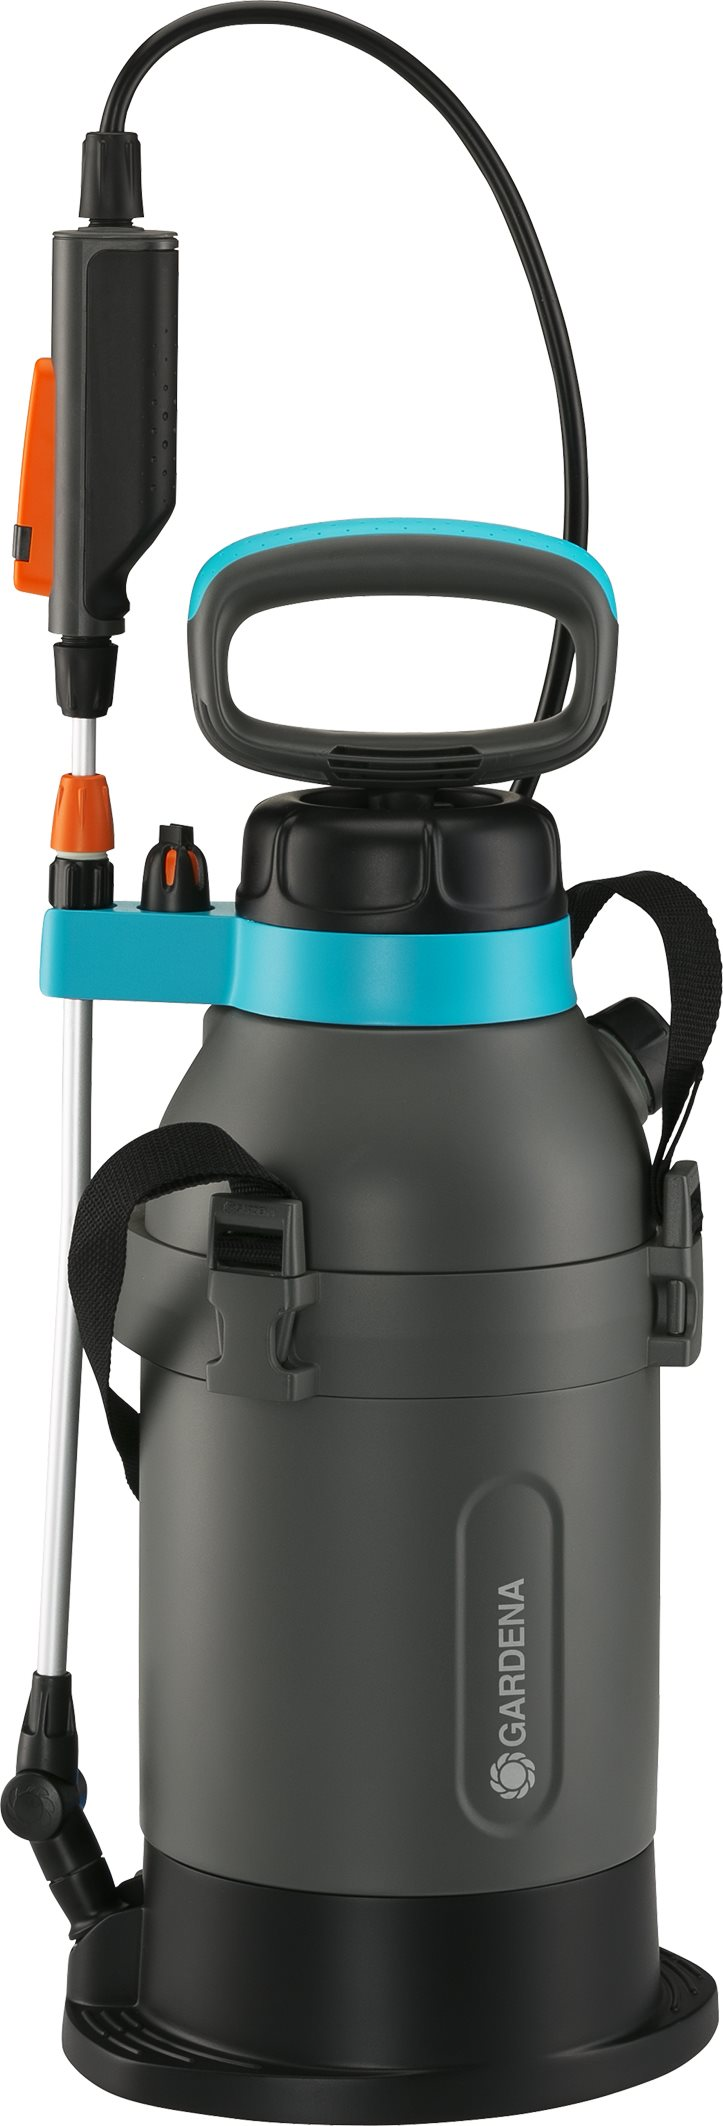 GARDENA Plus Pressure Sprayer 5 L